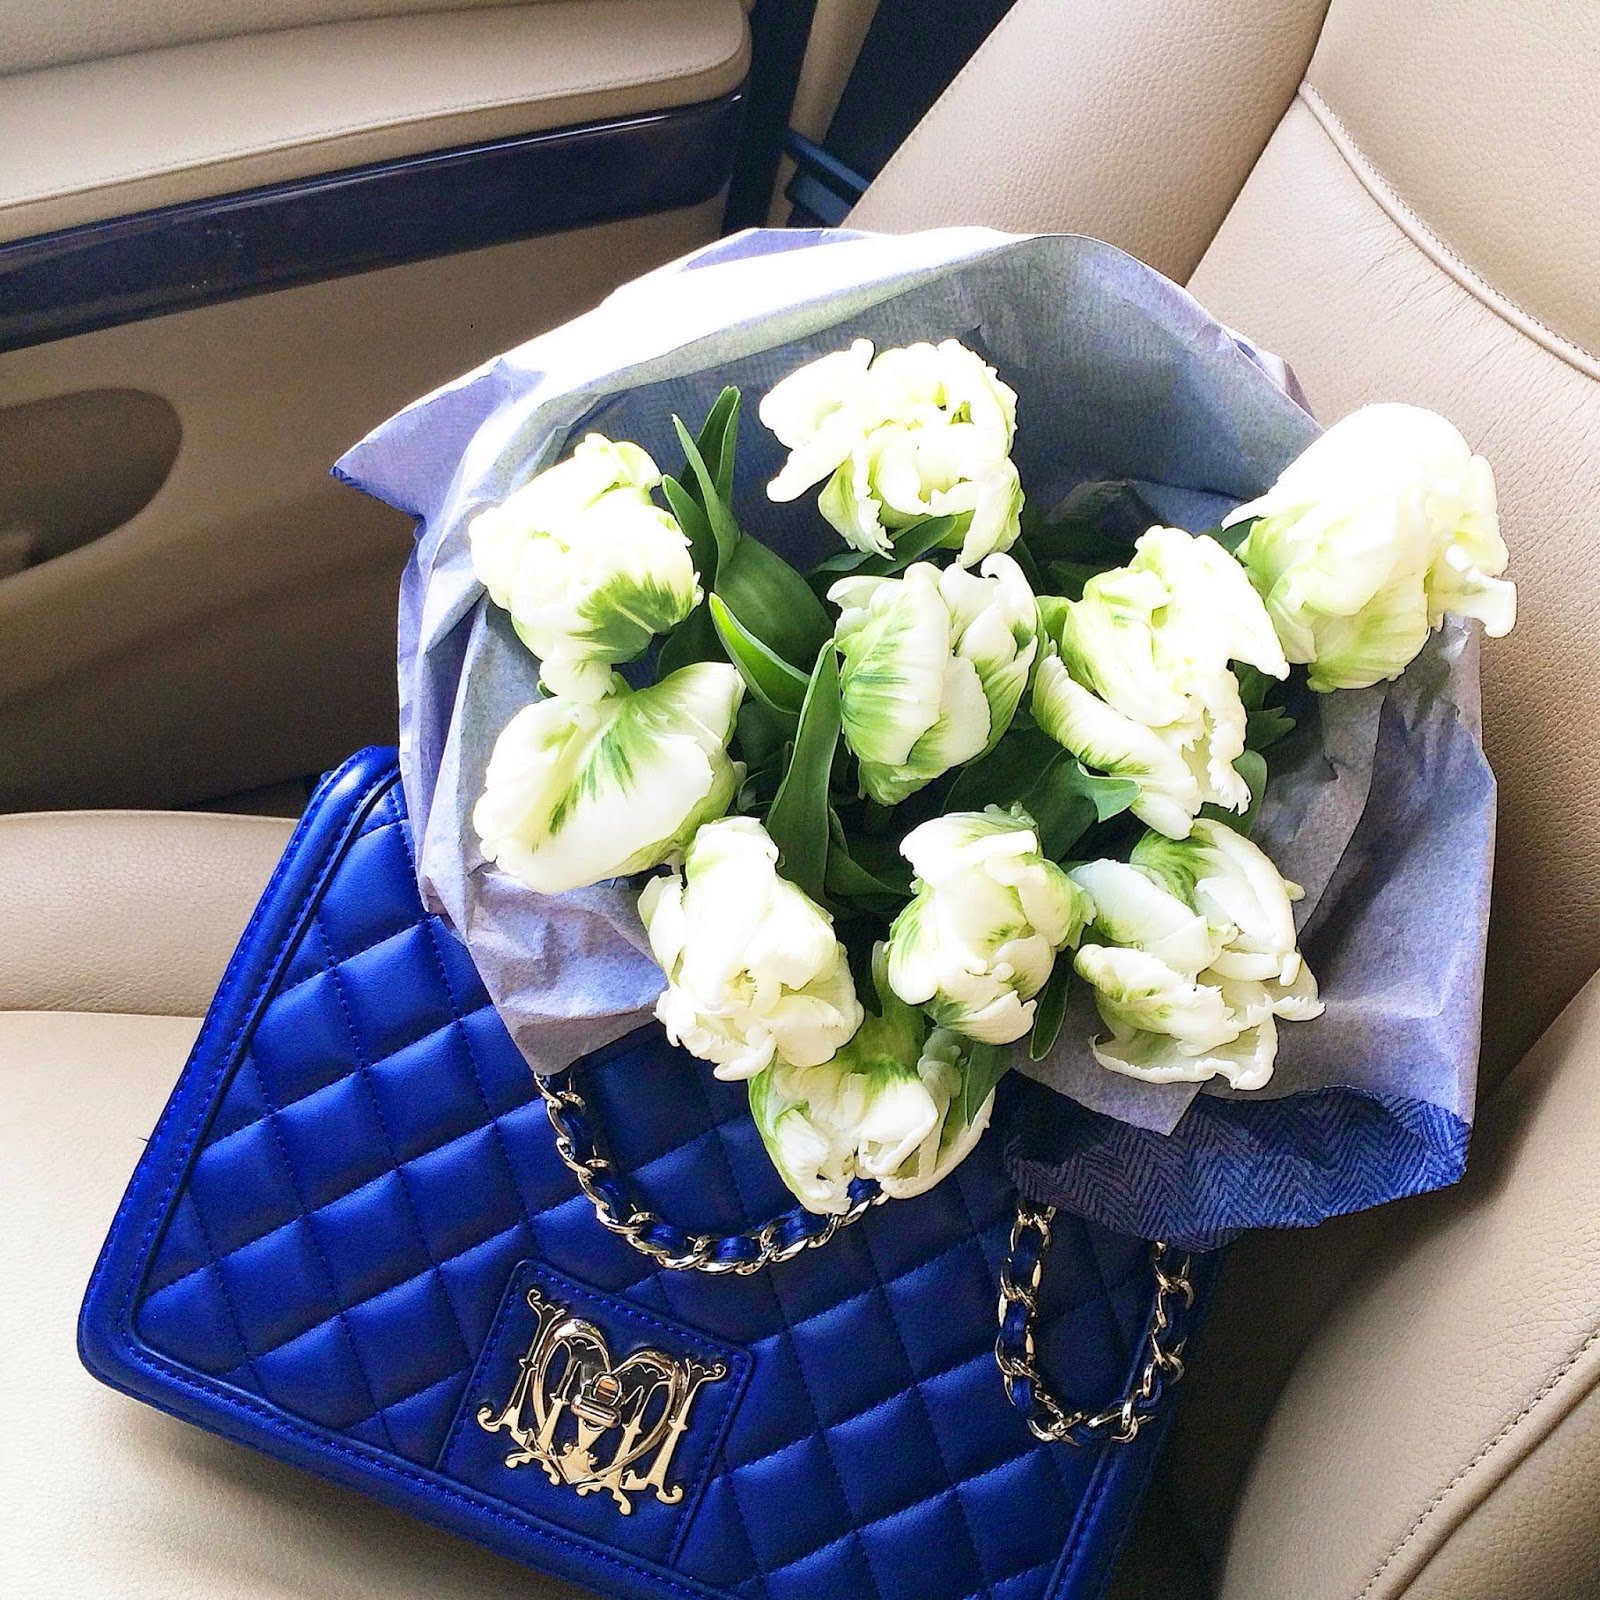 kristjaana mere instagram white tulips blue quilted bag